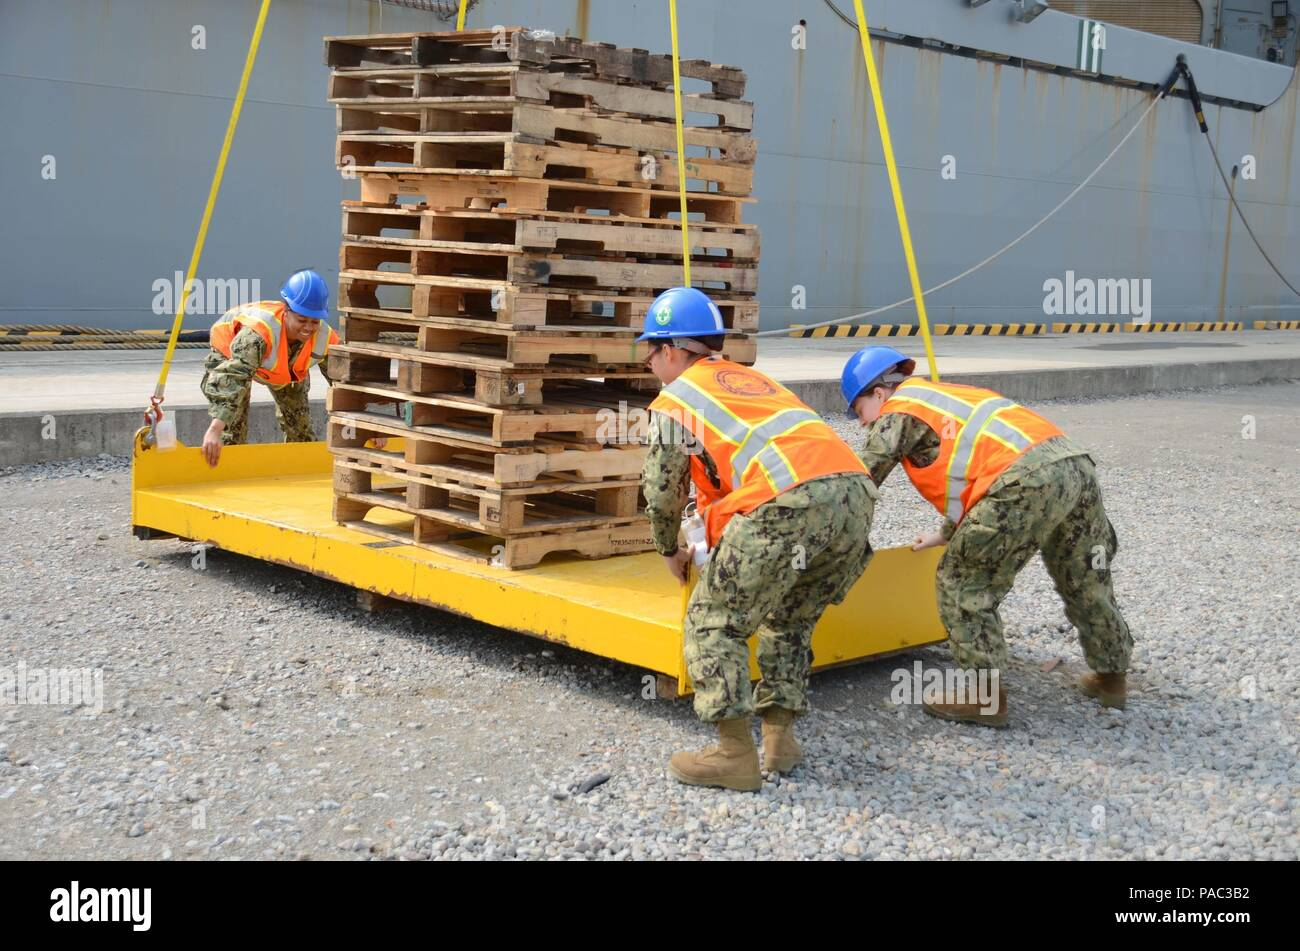 160307-N-WJ640-118 GWANGYANG, South Korea—Sailors attached to Navy Cargo Handling Battalion 1 out of Williamsburg, Va., guide a cargo platform during a training exercise on board dry cargo/ammunition ship USNS Sacagawea (T-AKE 2), March 7. The Sacagawea was one of three MPF ships that offloaded her cargo in support of Exercise Ssang Yong 16 (SY16), under the Exercise Freedom Banner 2016 (FB16) directive. FB16, a Navy and Marine Corps deployment and offload/backload exercise that is nestled within SY16, brought multiple commands together to offload Maritime Prepositioning Force ships. (U.S. Nav Stock Photo